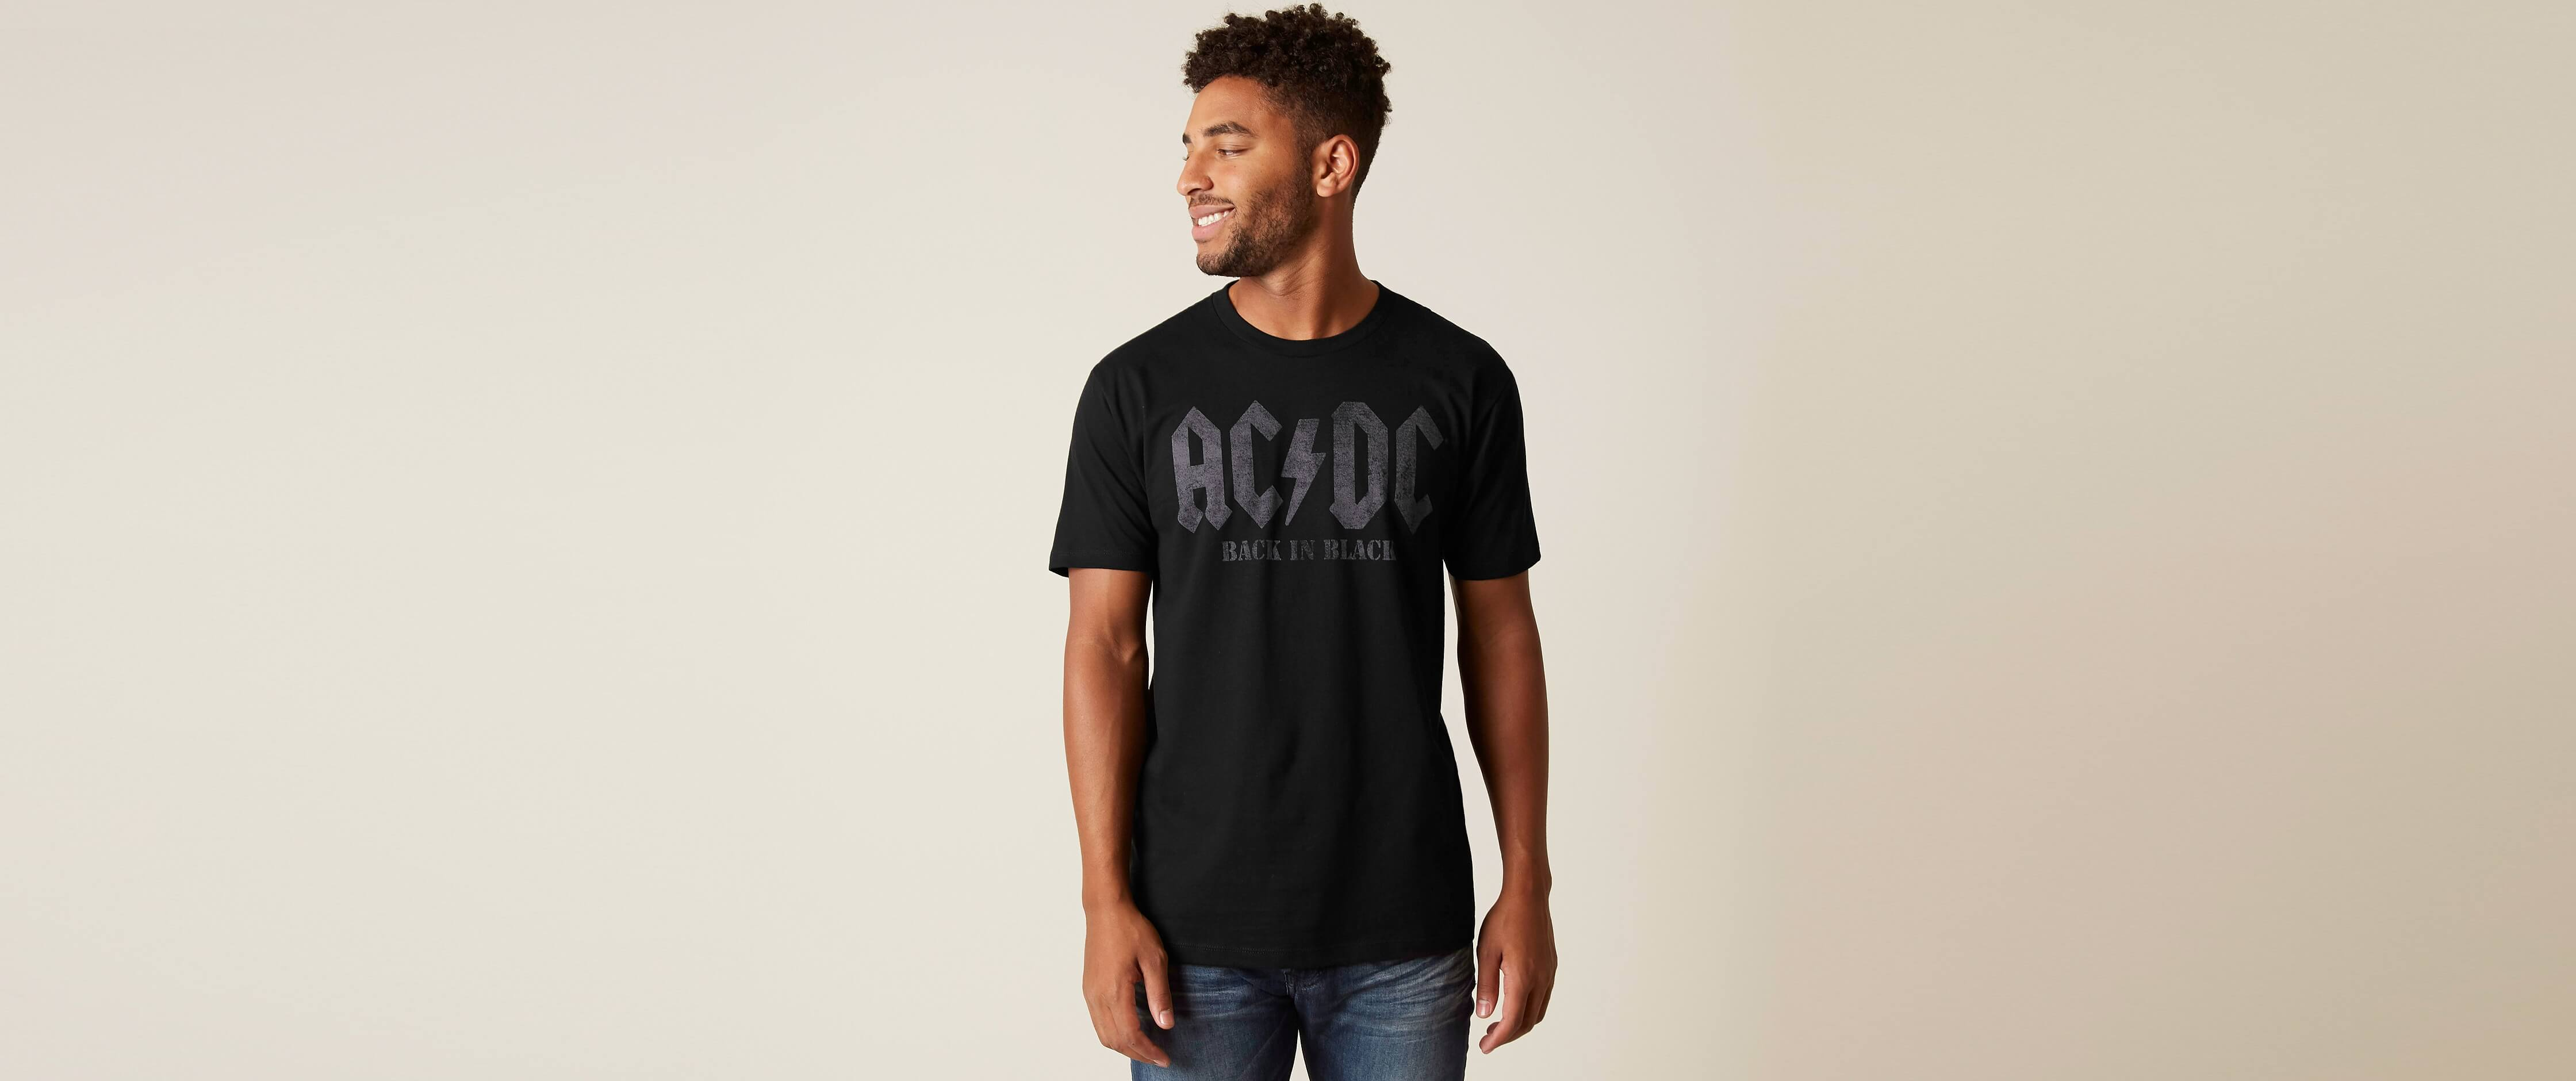 Goodie Two Sleeves AC/DC Band T-Shirt supplier